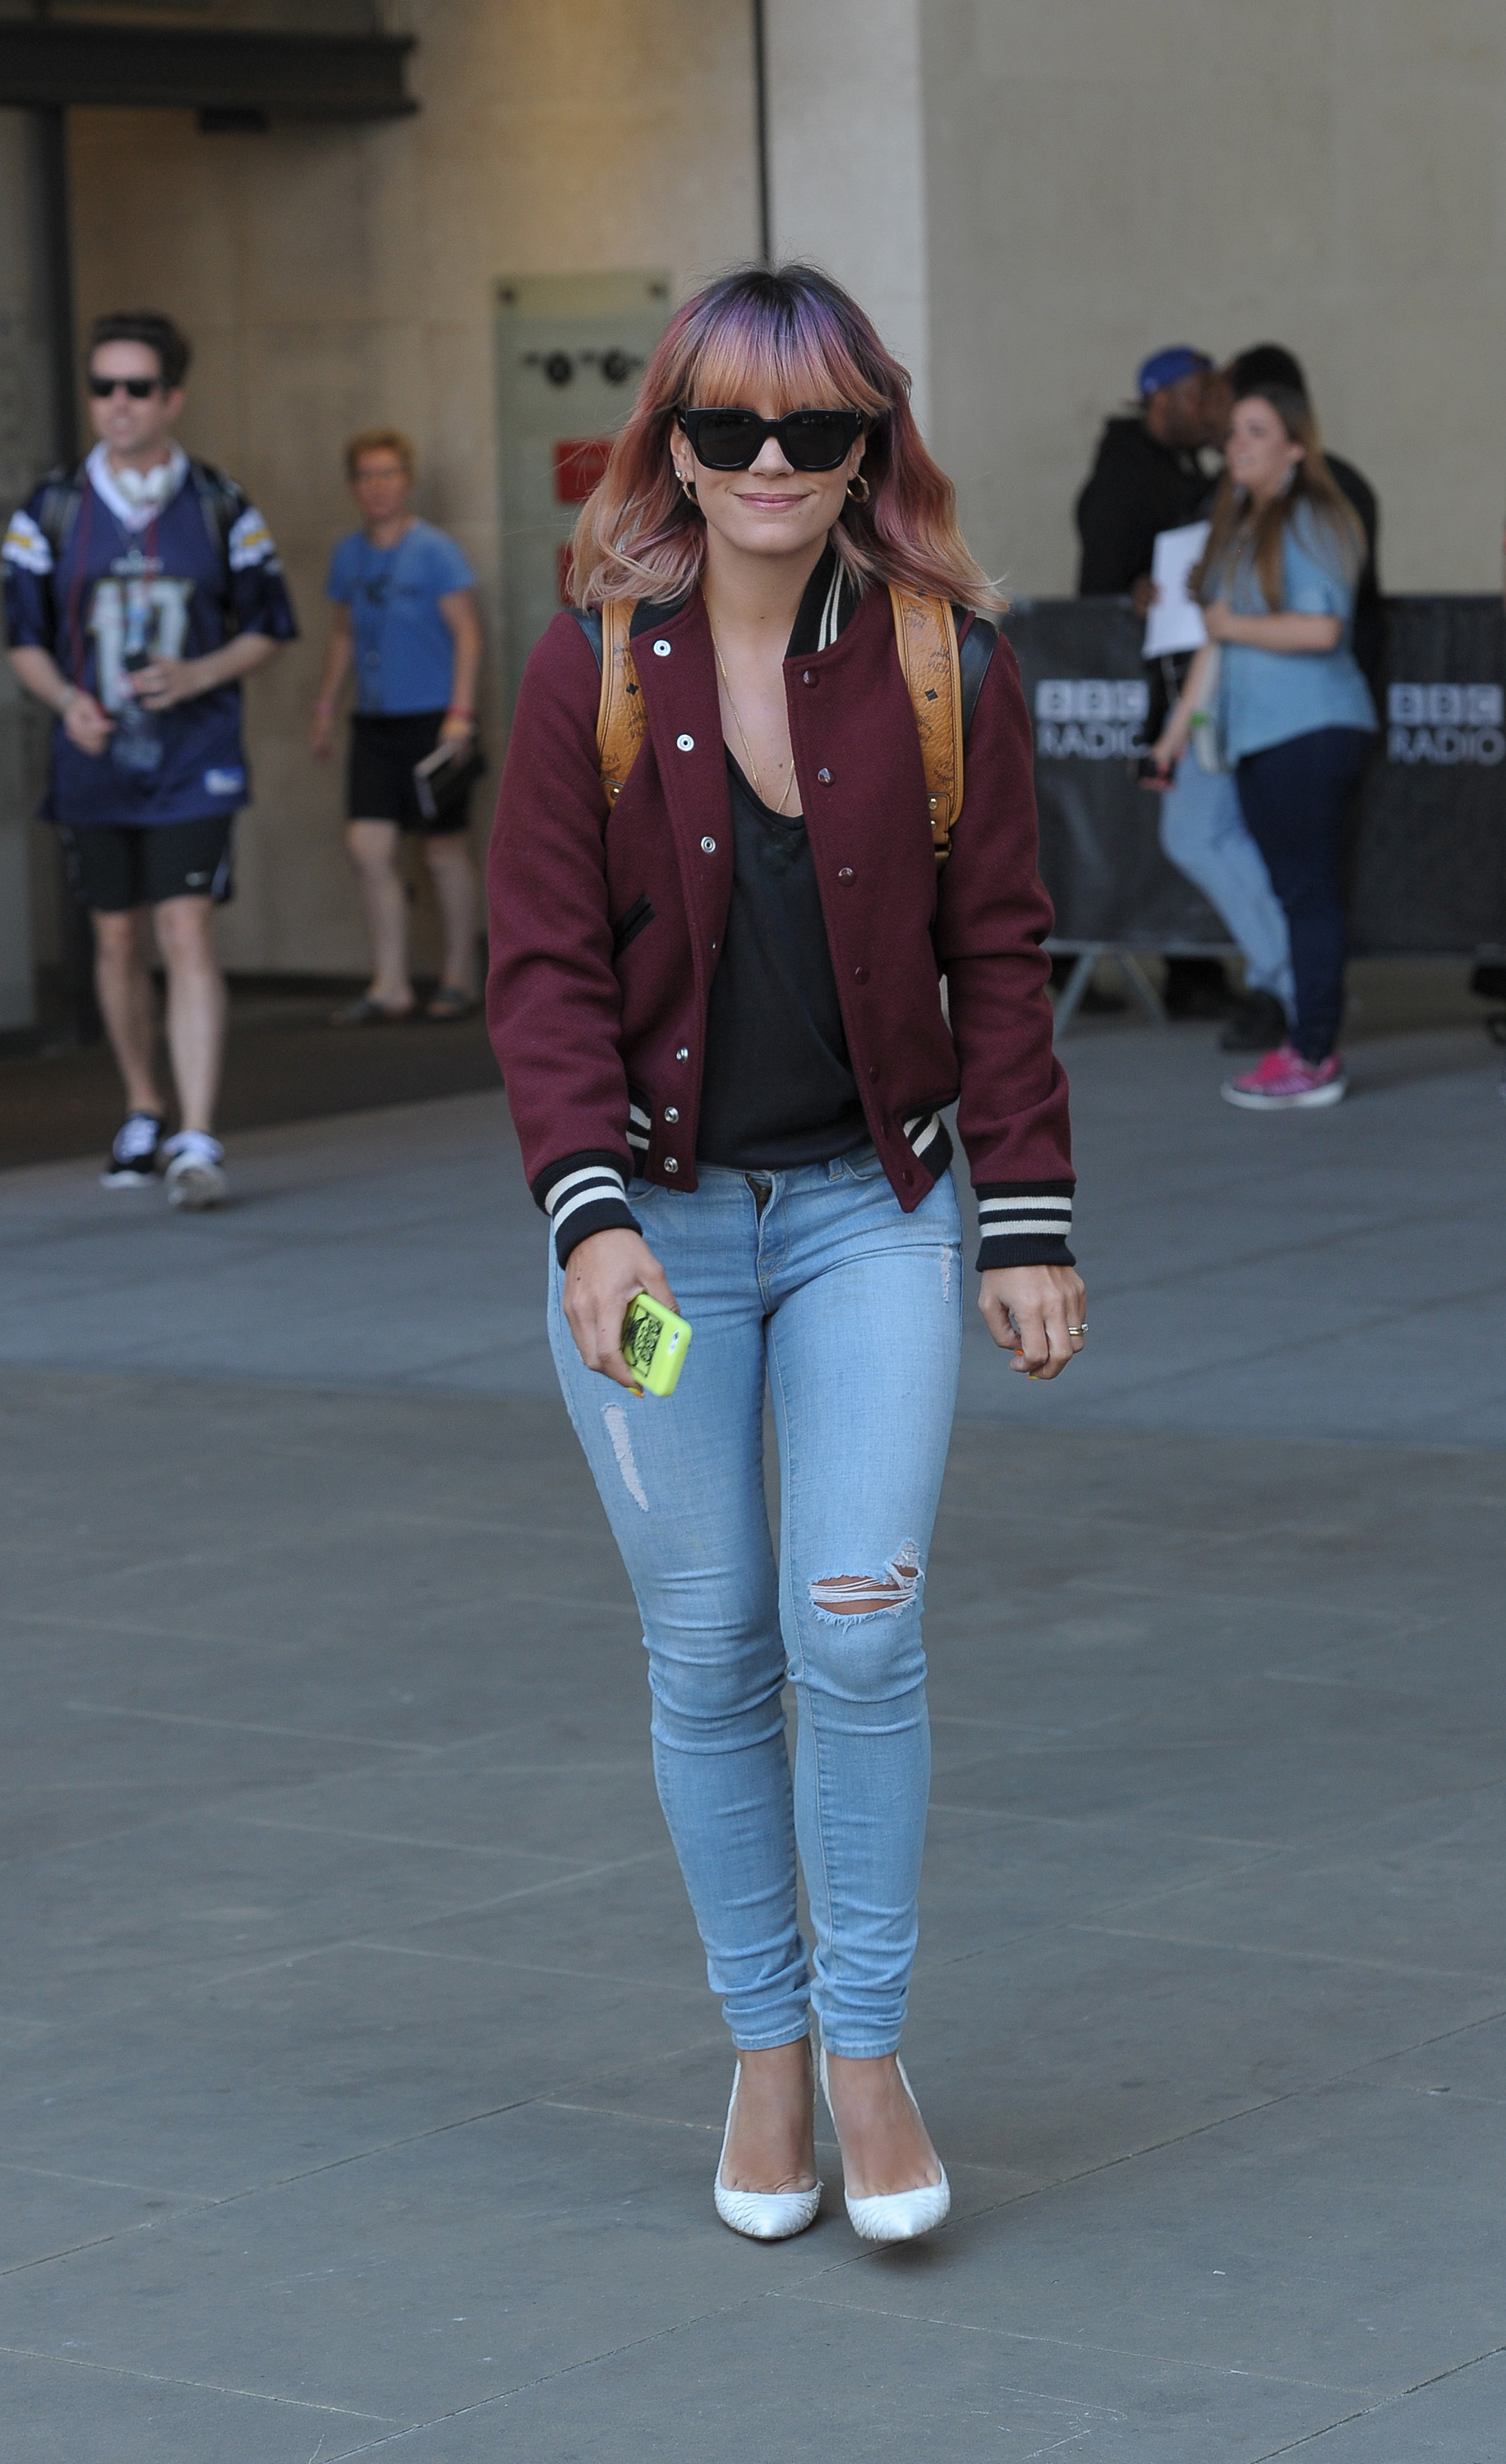 Lily Allen looked too cool for school in a maroon jacket, denim skinnies and a beige backpack slung over her shoulders.